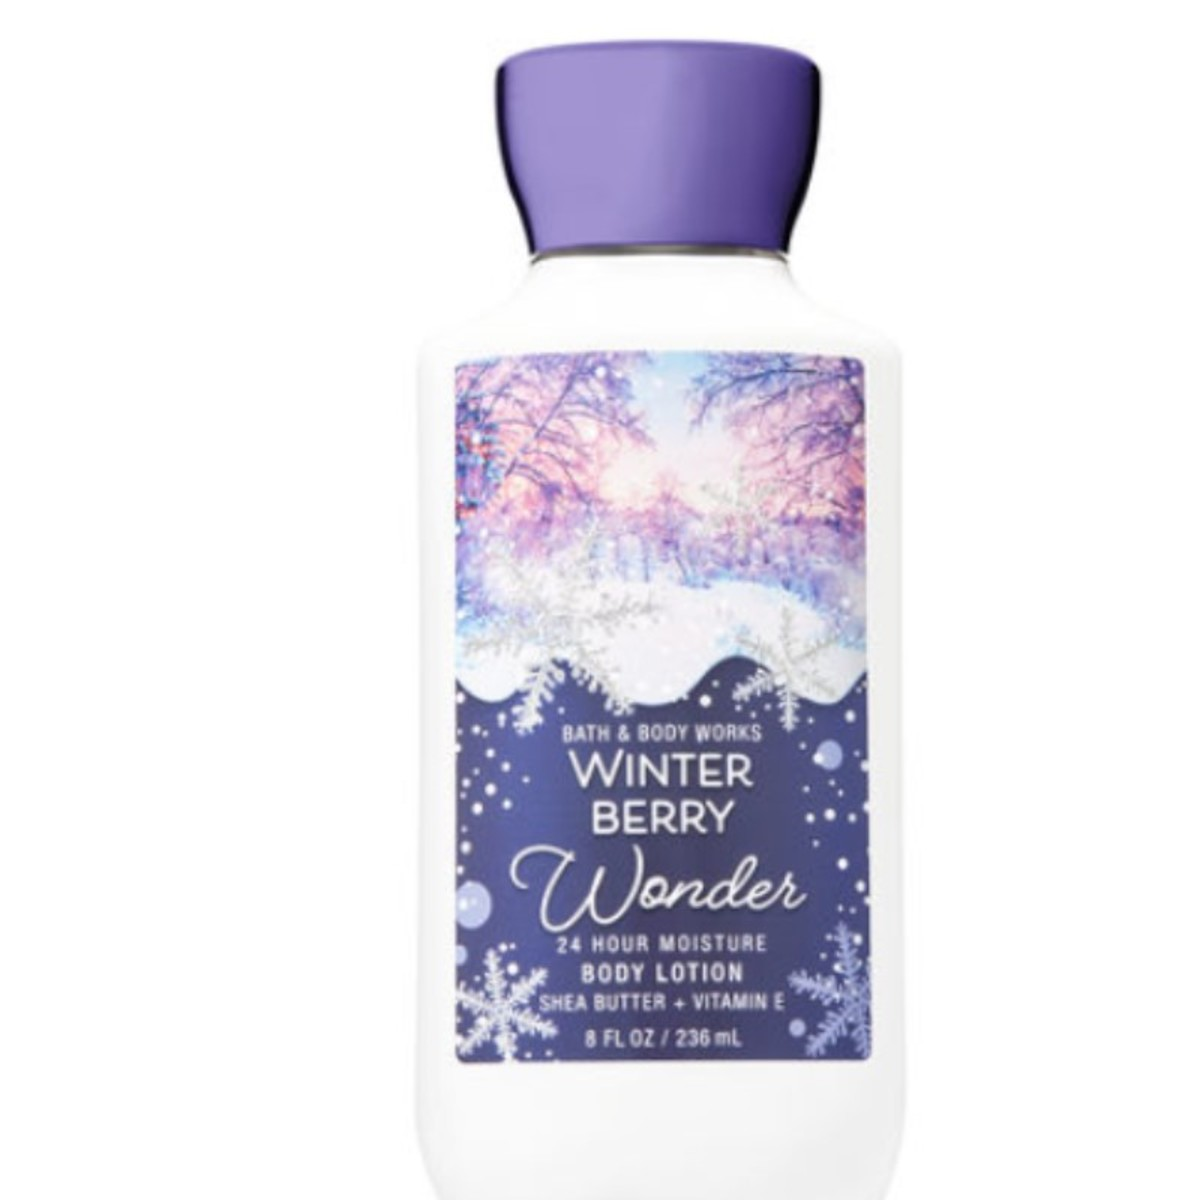 Winter Berry Wonder Body Lotion(Parallel Imports Product)